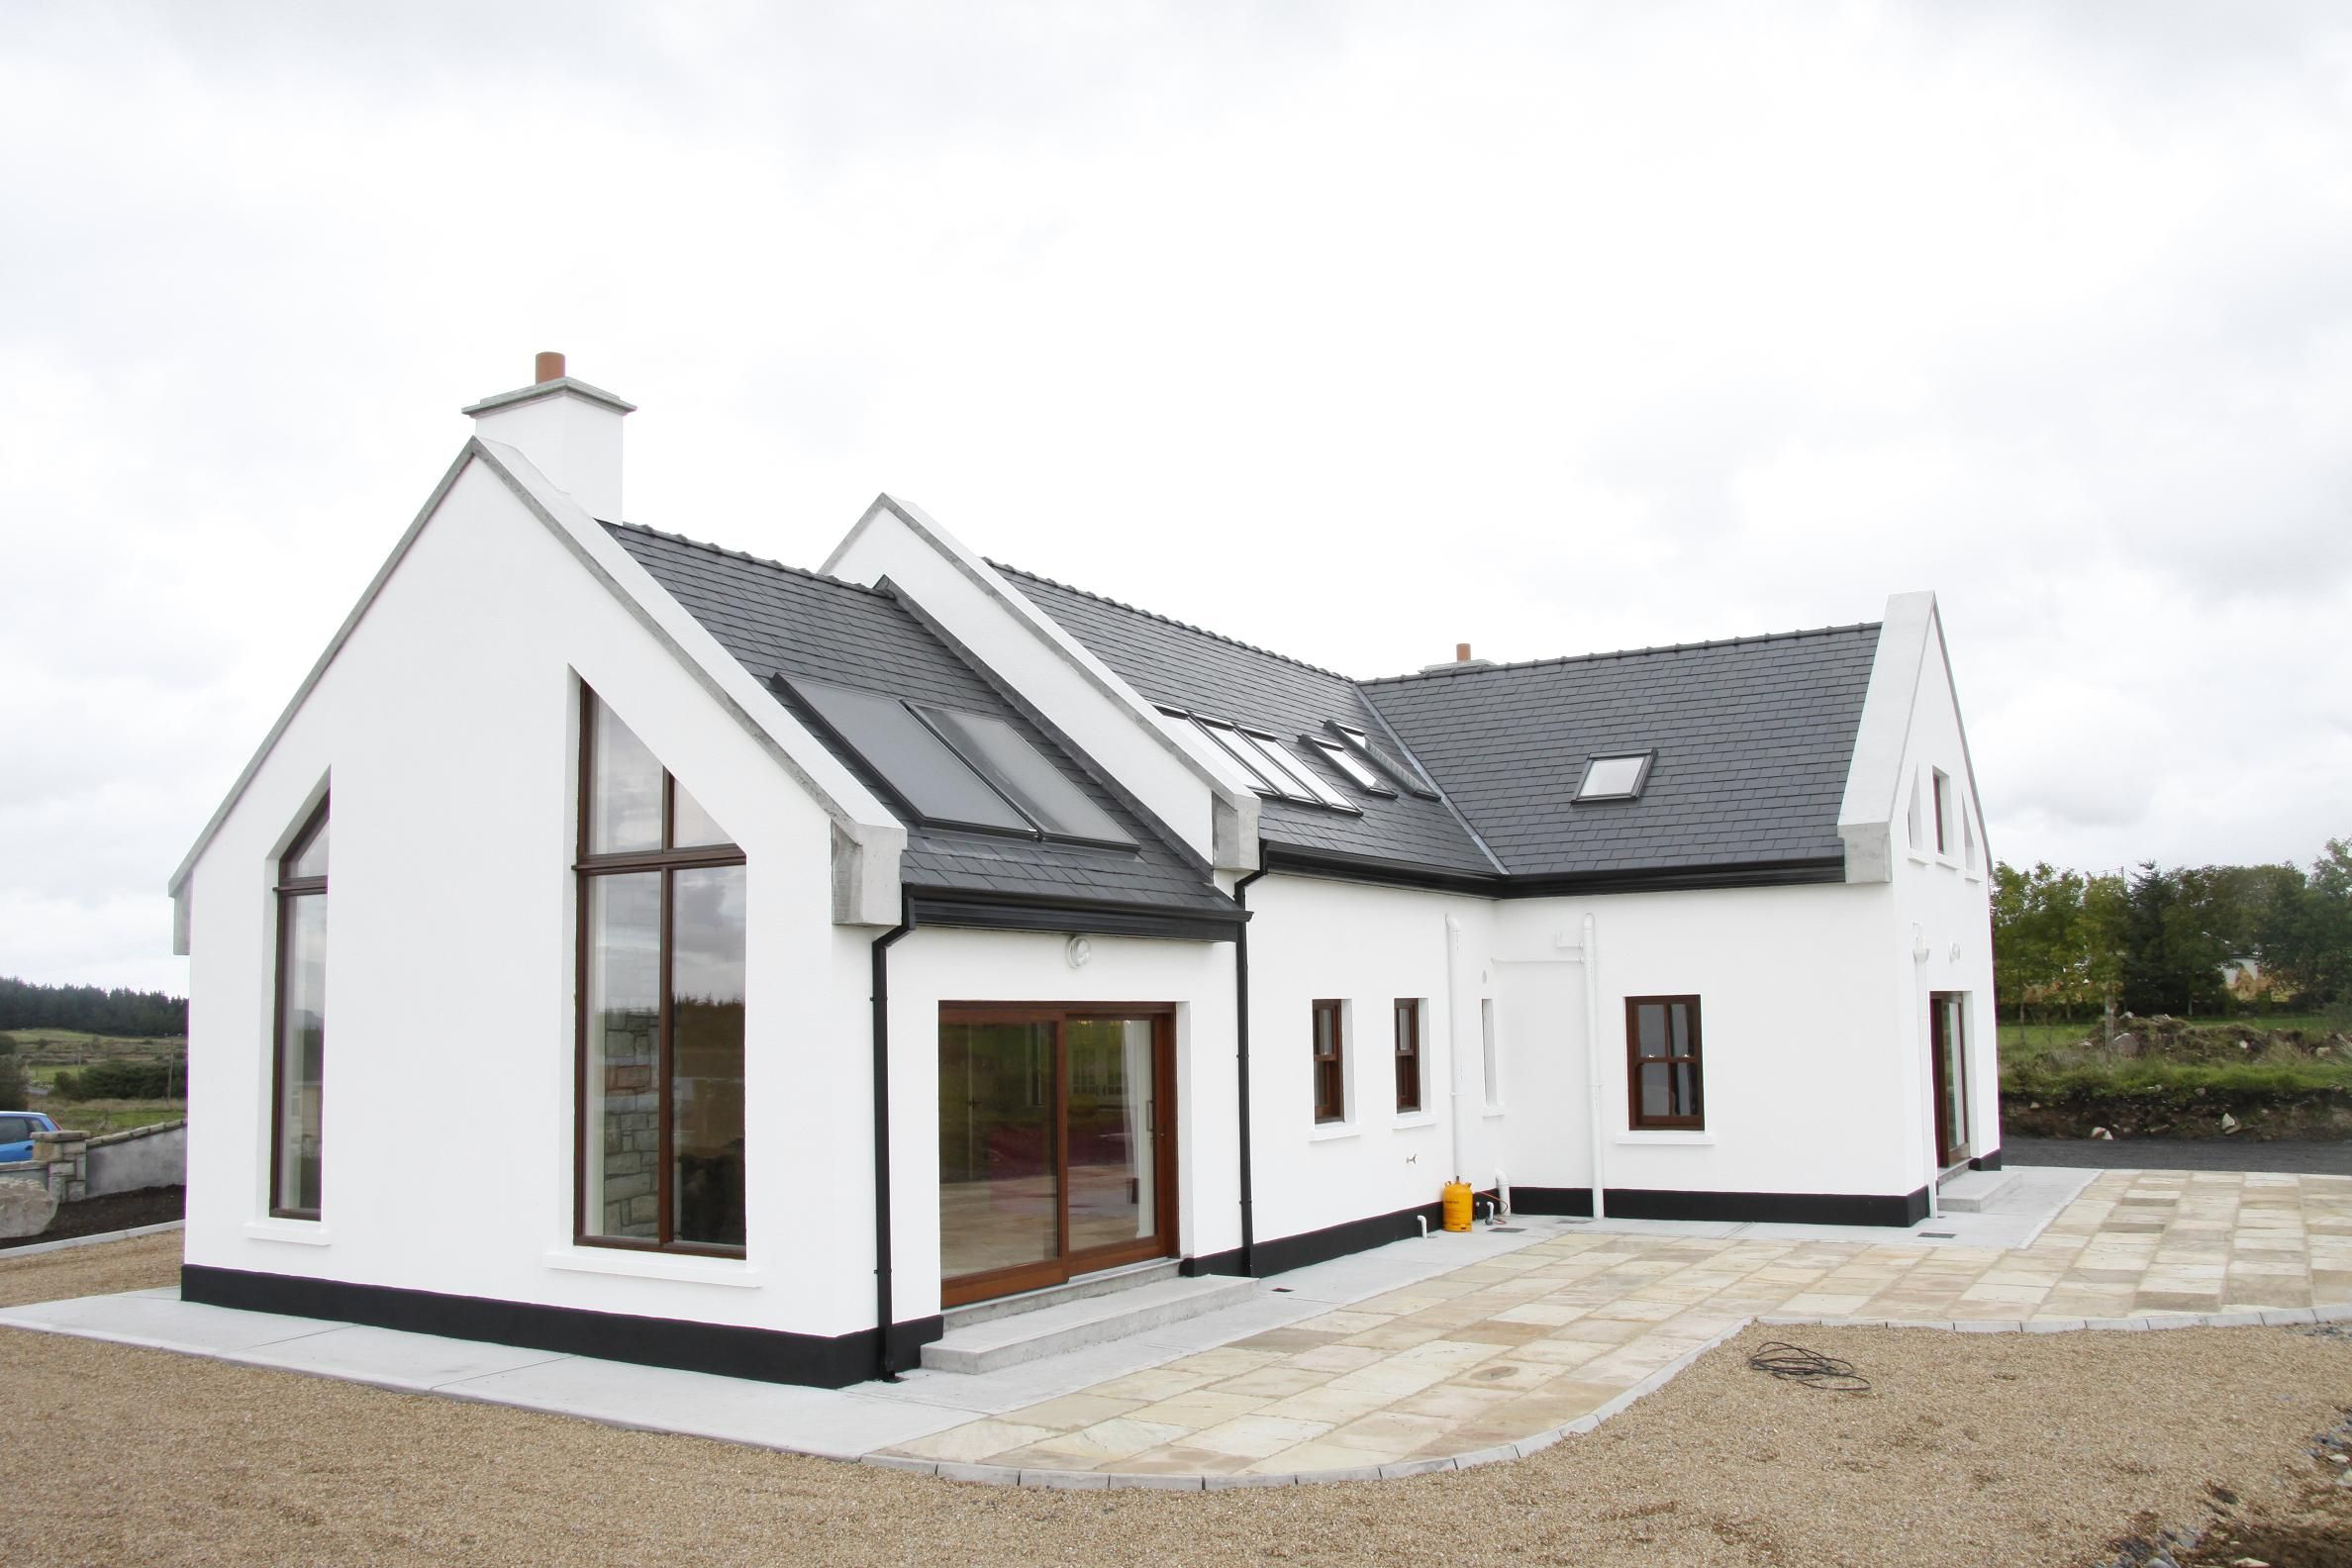 Exterior bungalow house ireland google search house for Bungalow plans ireland